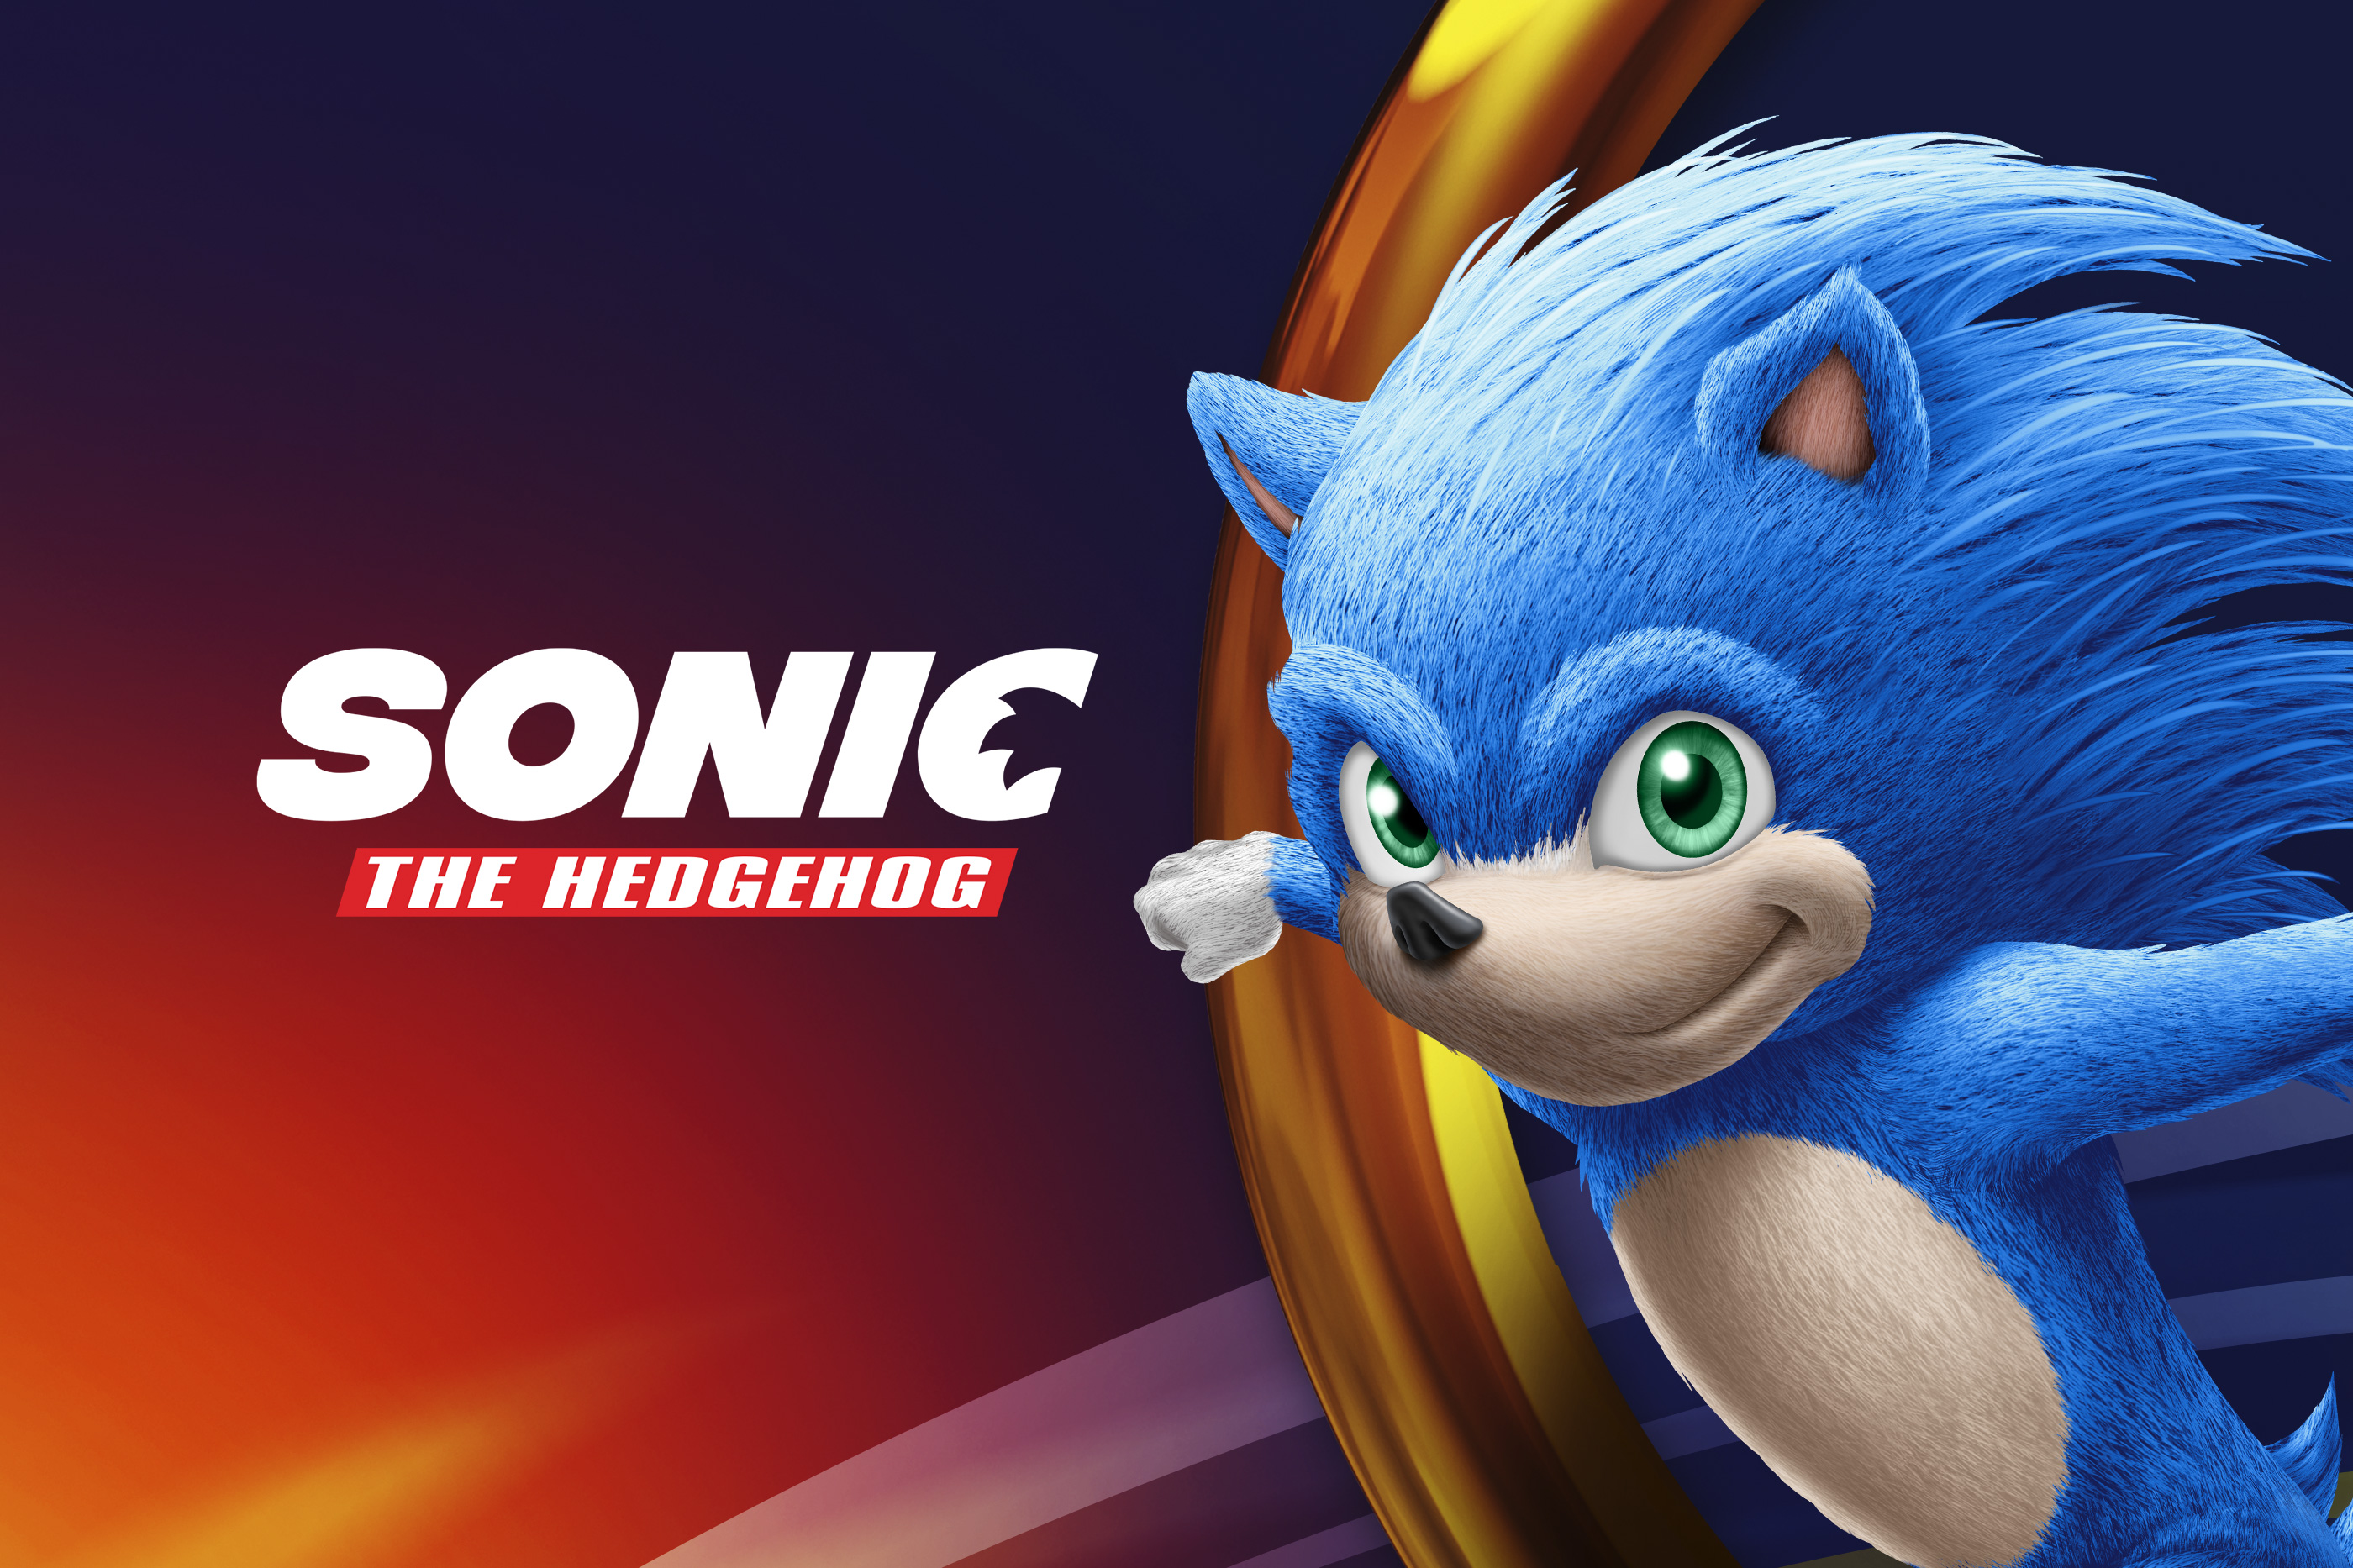 19 Sonic The Hedgehog Movie 2019 Wallpapers On Wallpapersafari